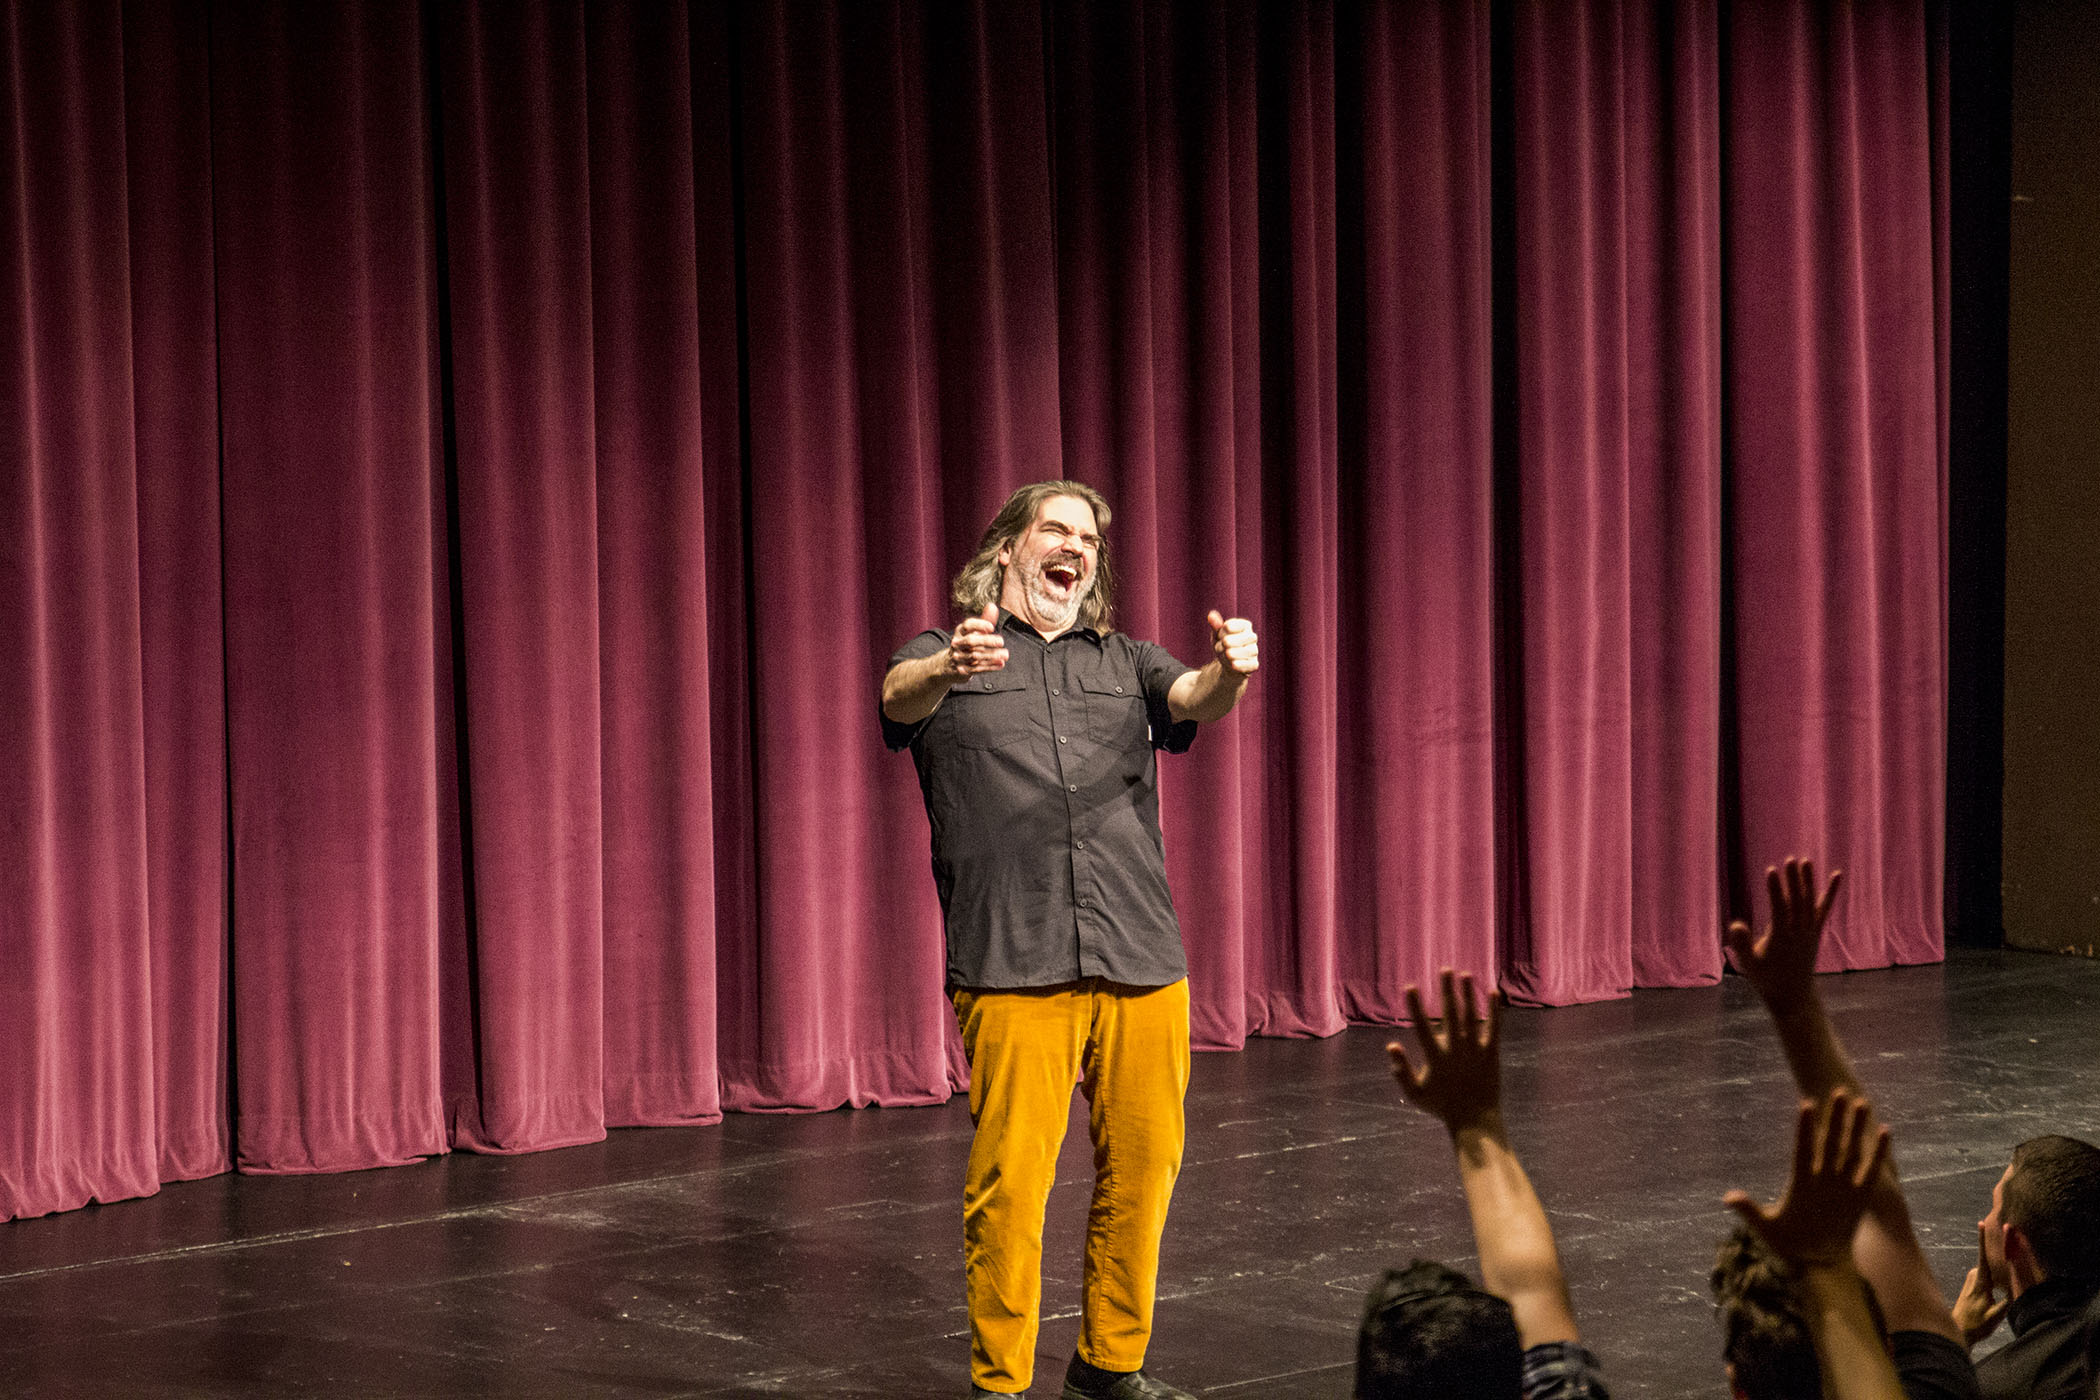 Peter Cook greeting the audience in the FCC Theater on March 30, 2017